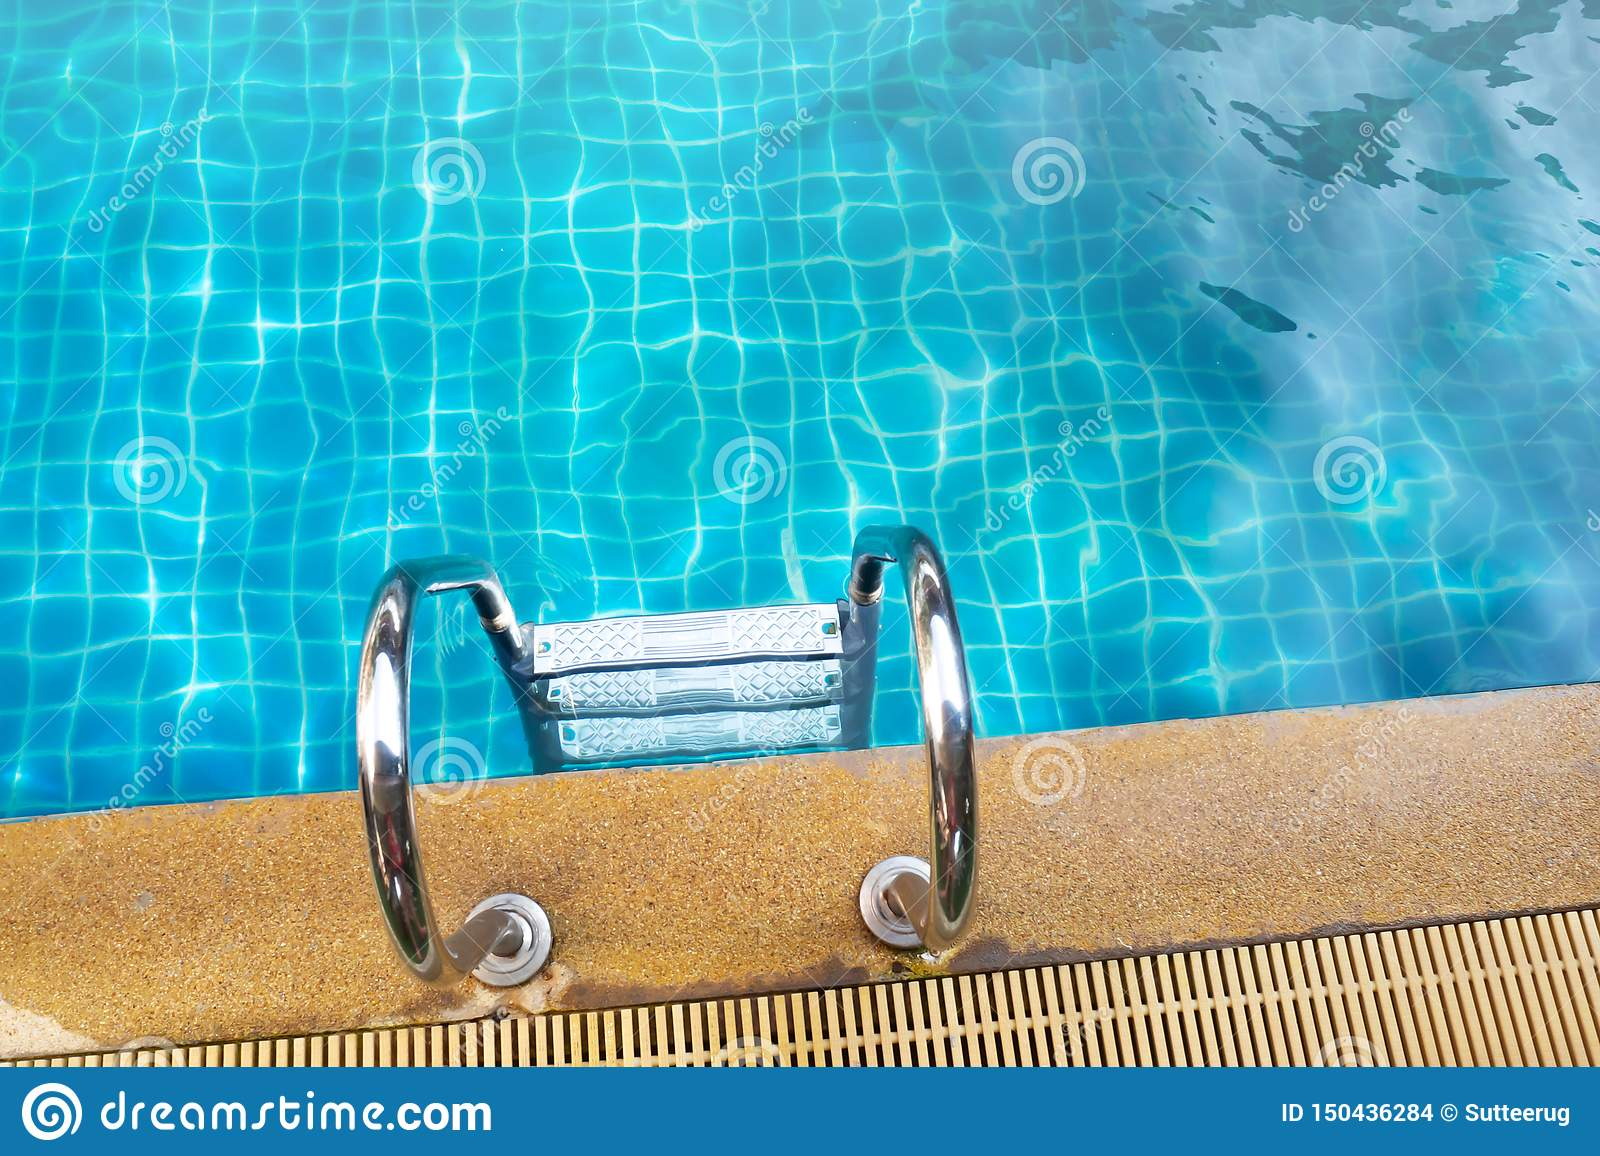 Stainless Rail In Swimming Pool. Water Activity Stock Photo ...